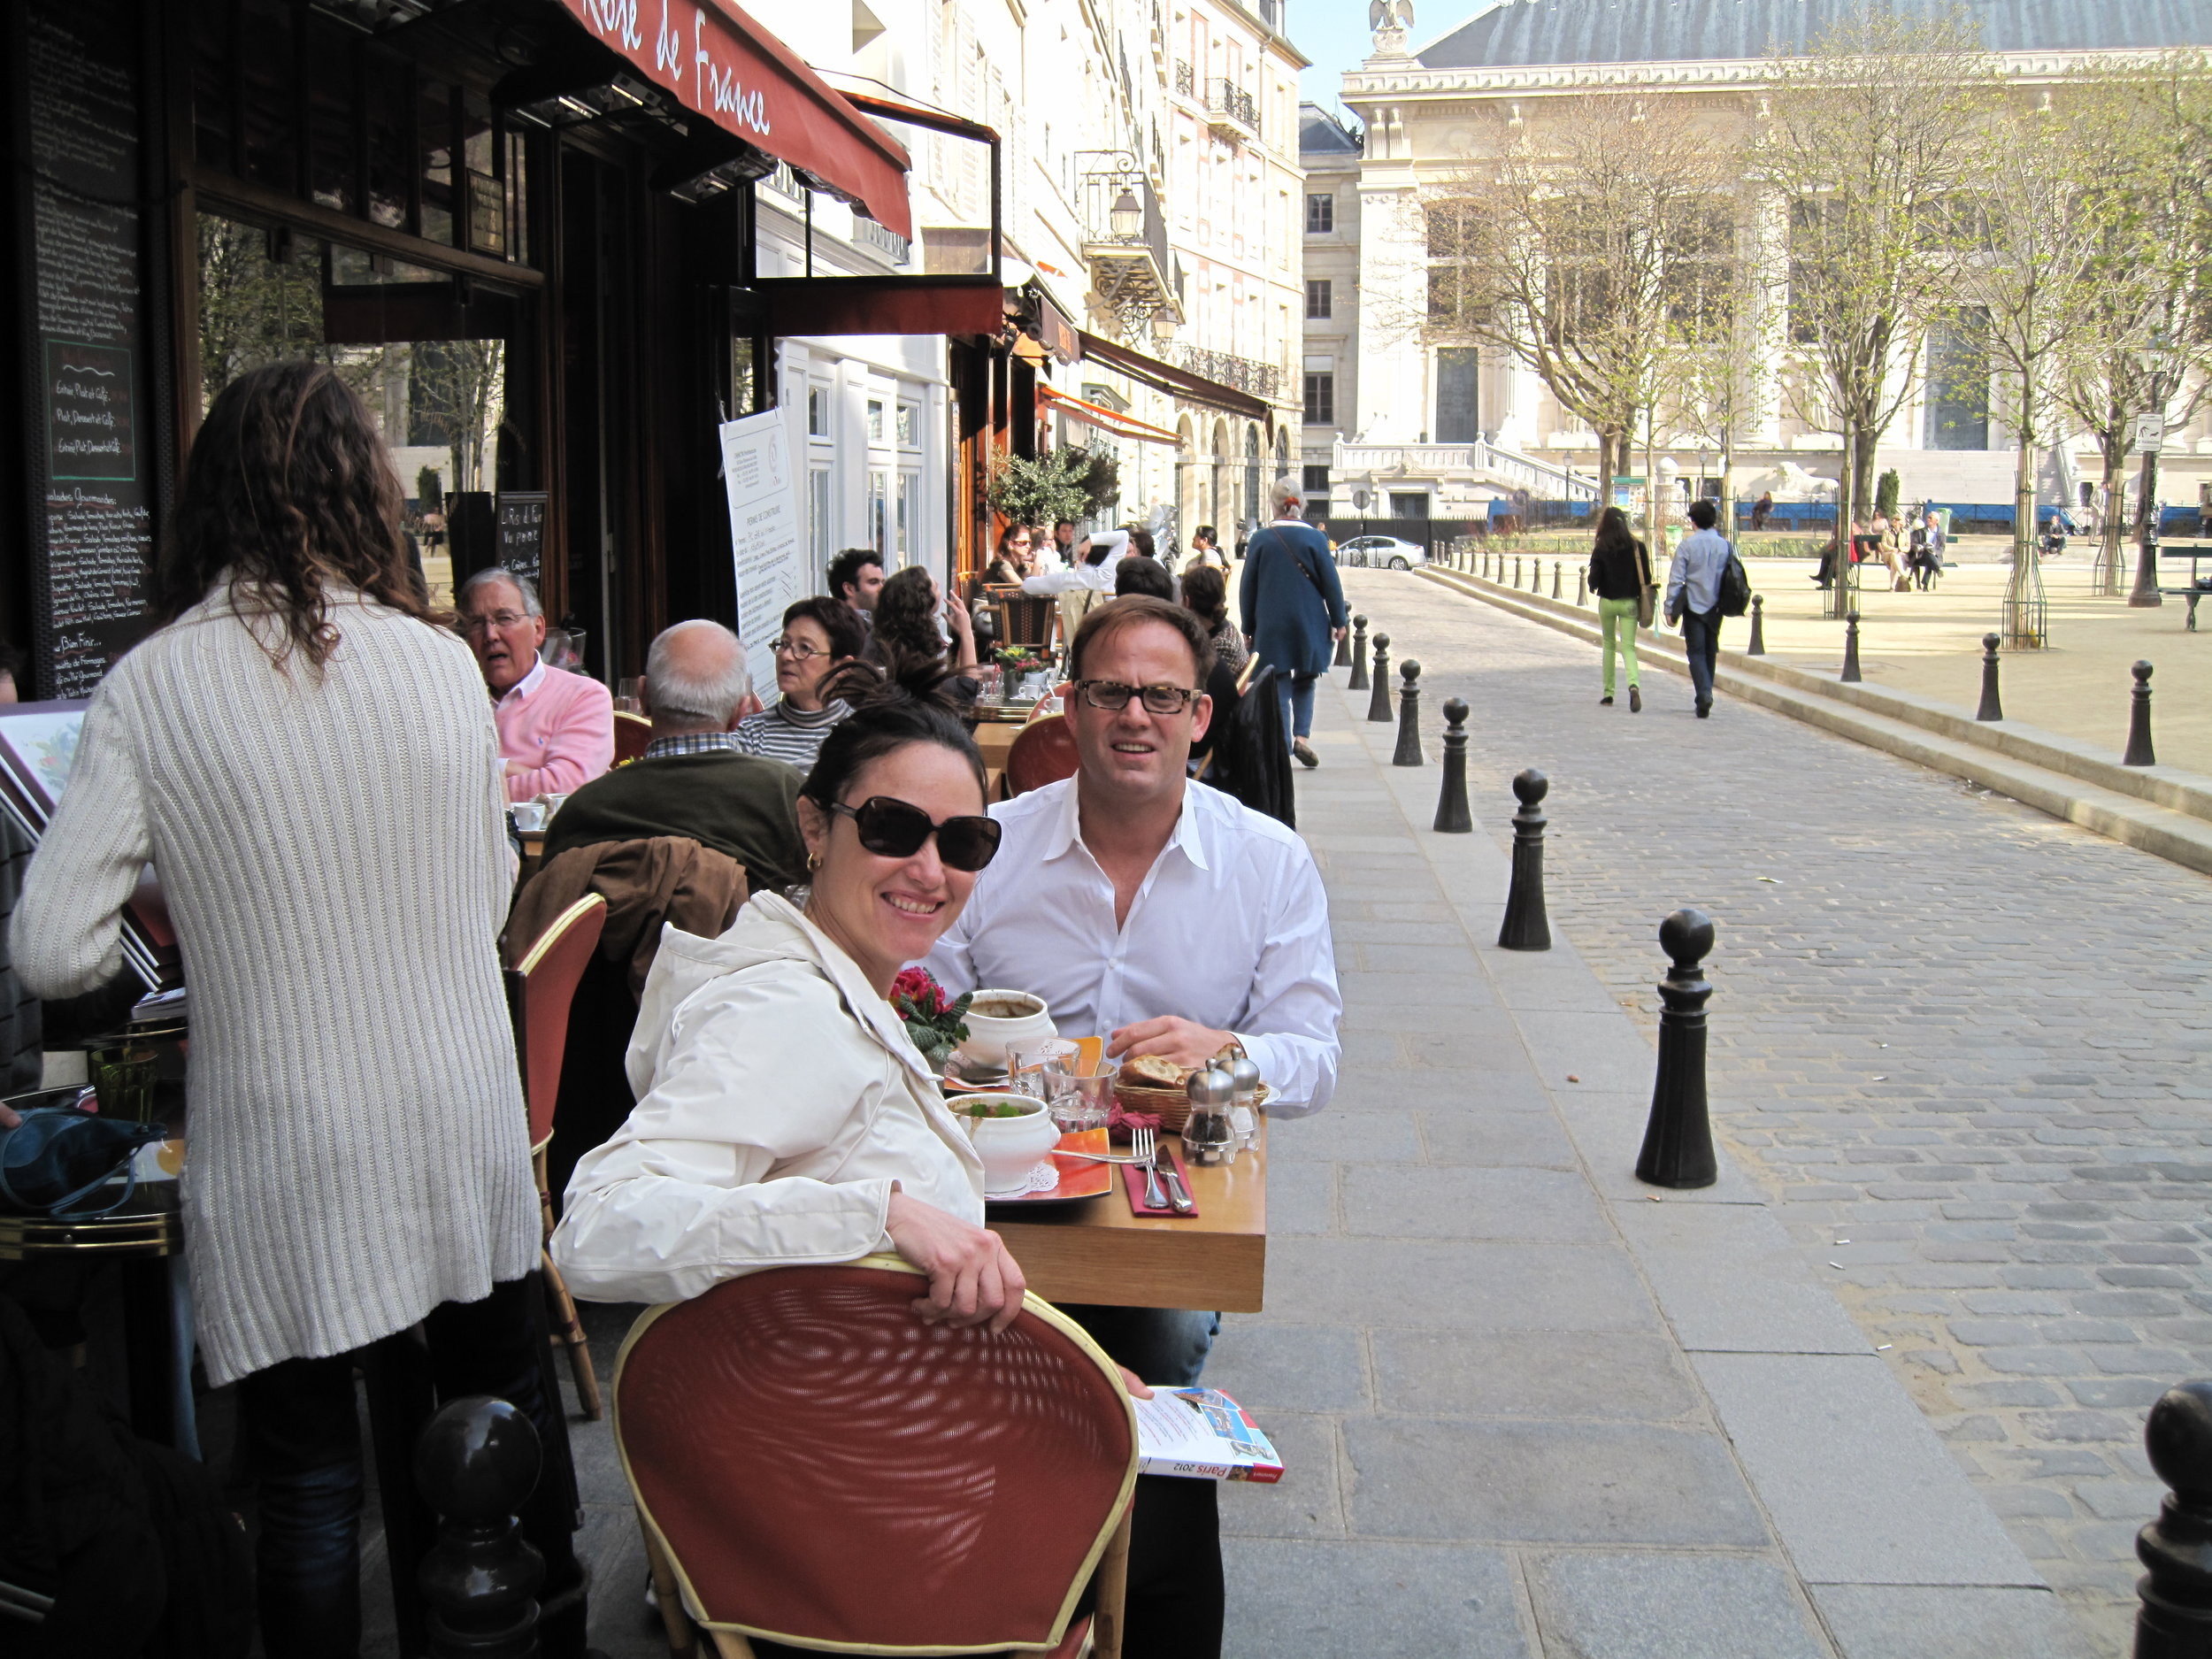 Lunch at a Cafe - Paris, France